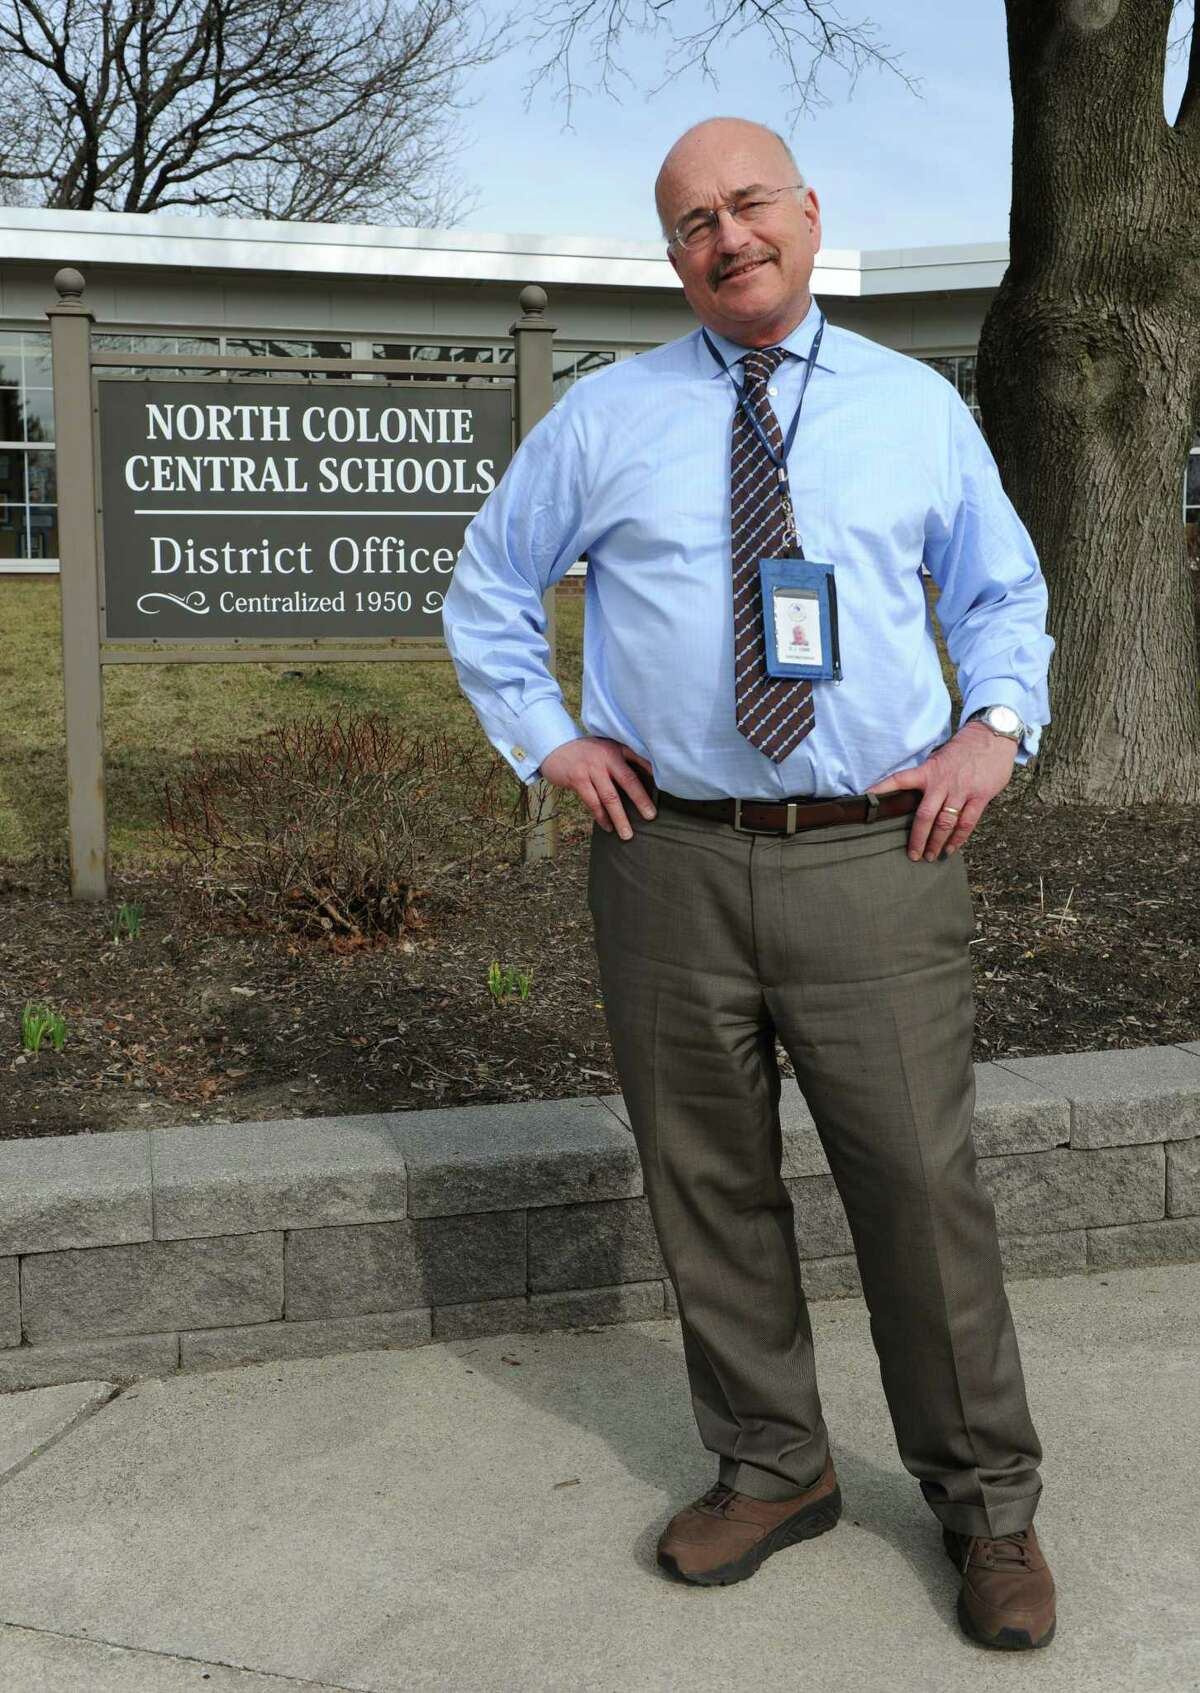 North Colonie School District Superintendent Joseph Corr stands outside his office on Wednesday, March 16, 2016 in Colonie, N.Y. (Lori Van Buren / Times Union)